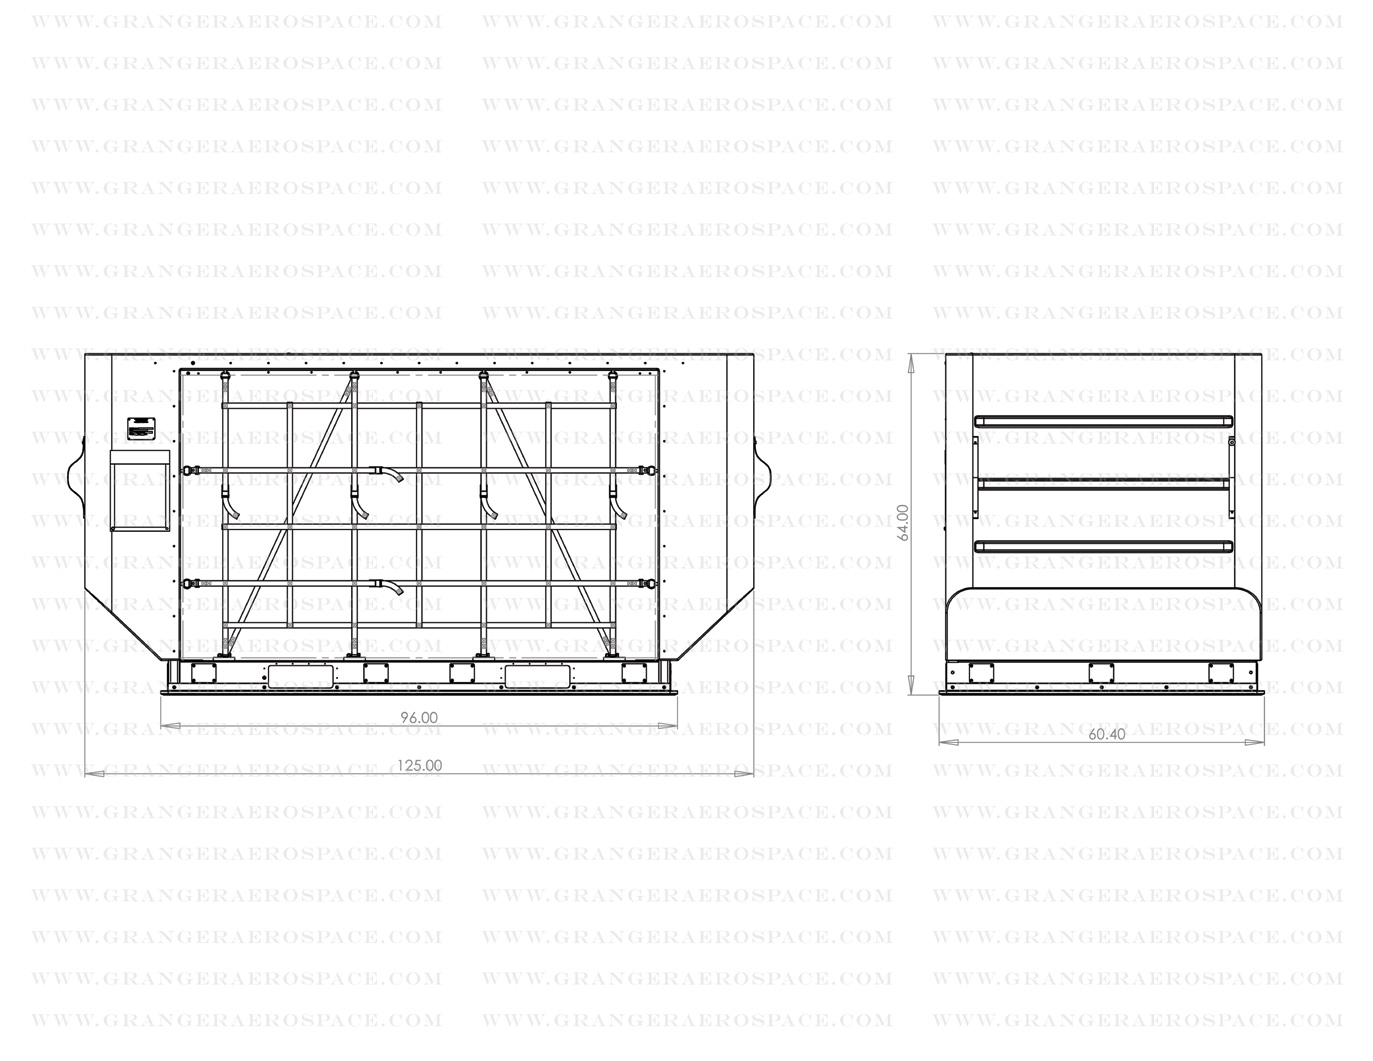 LD 8 Dimensions, LD 8 Air Cargo Container Dimensions, DQN dimensions